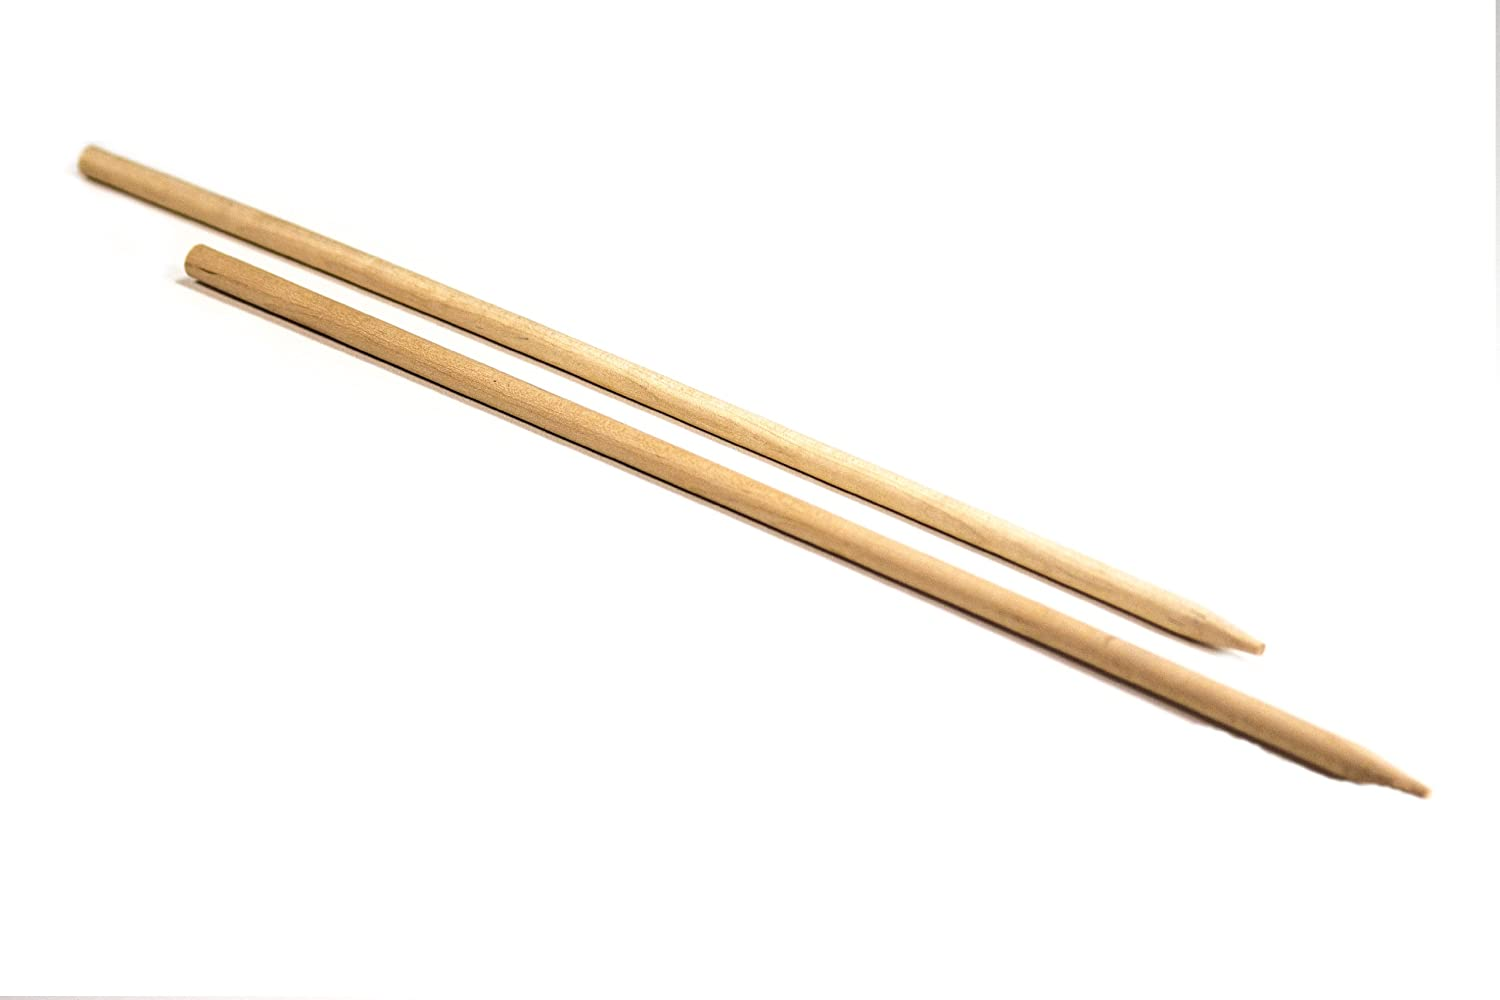 """Perfect Stix Wooden Pointed Candy Apple Stick, 1/4"""" Diameter x 5-1/2"""" Length (Pack of 1,000)"""